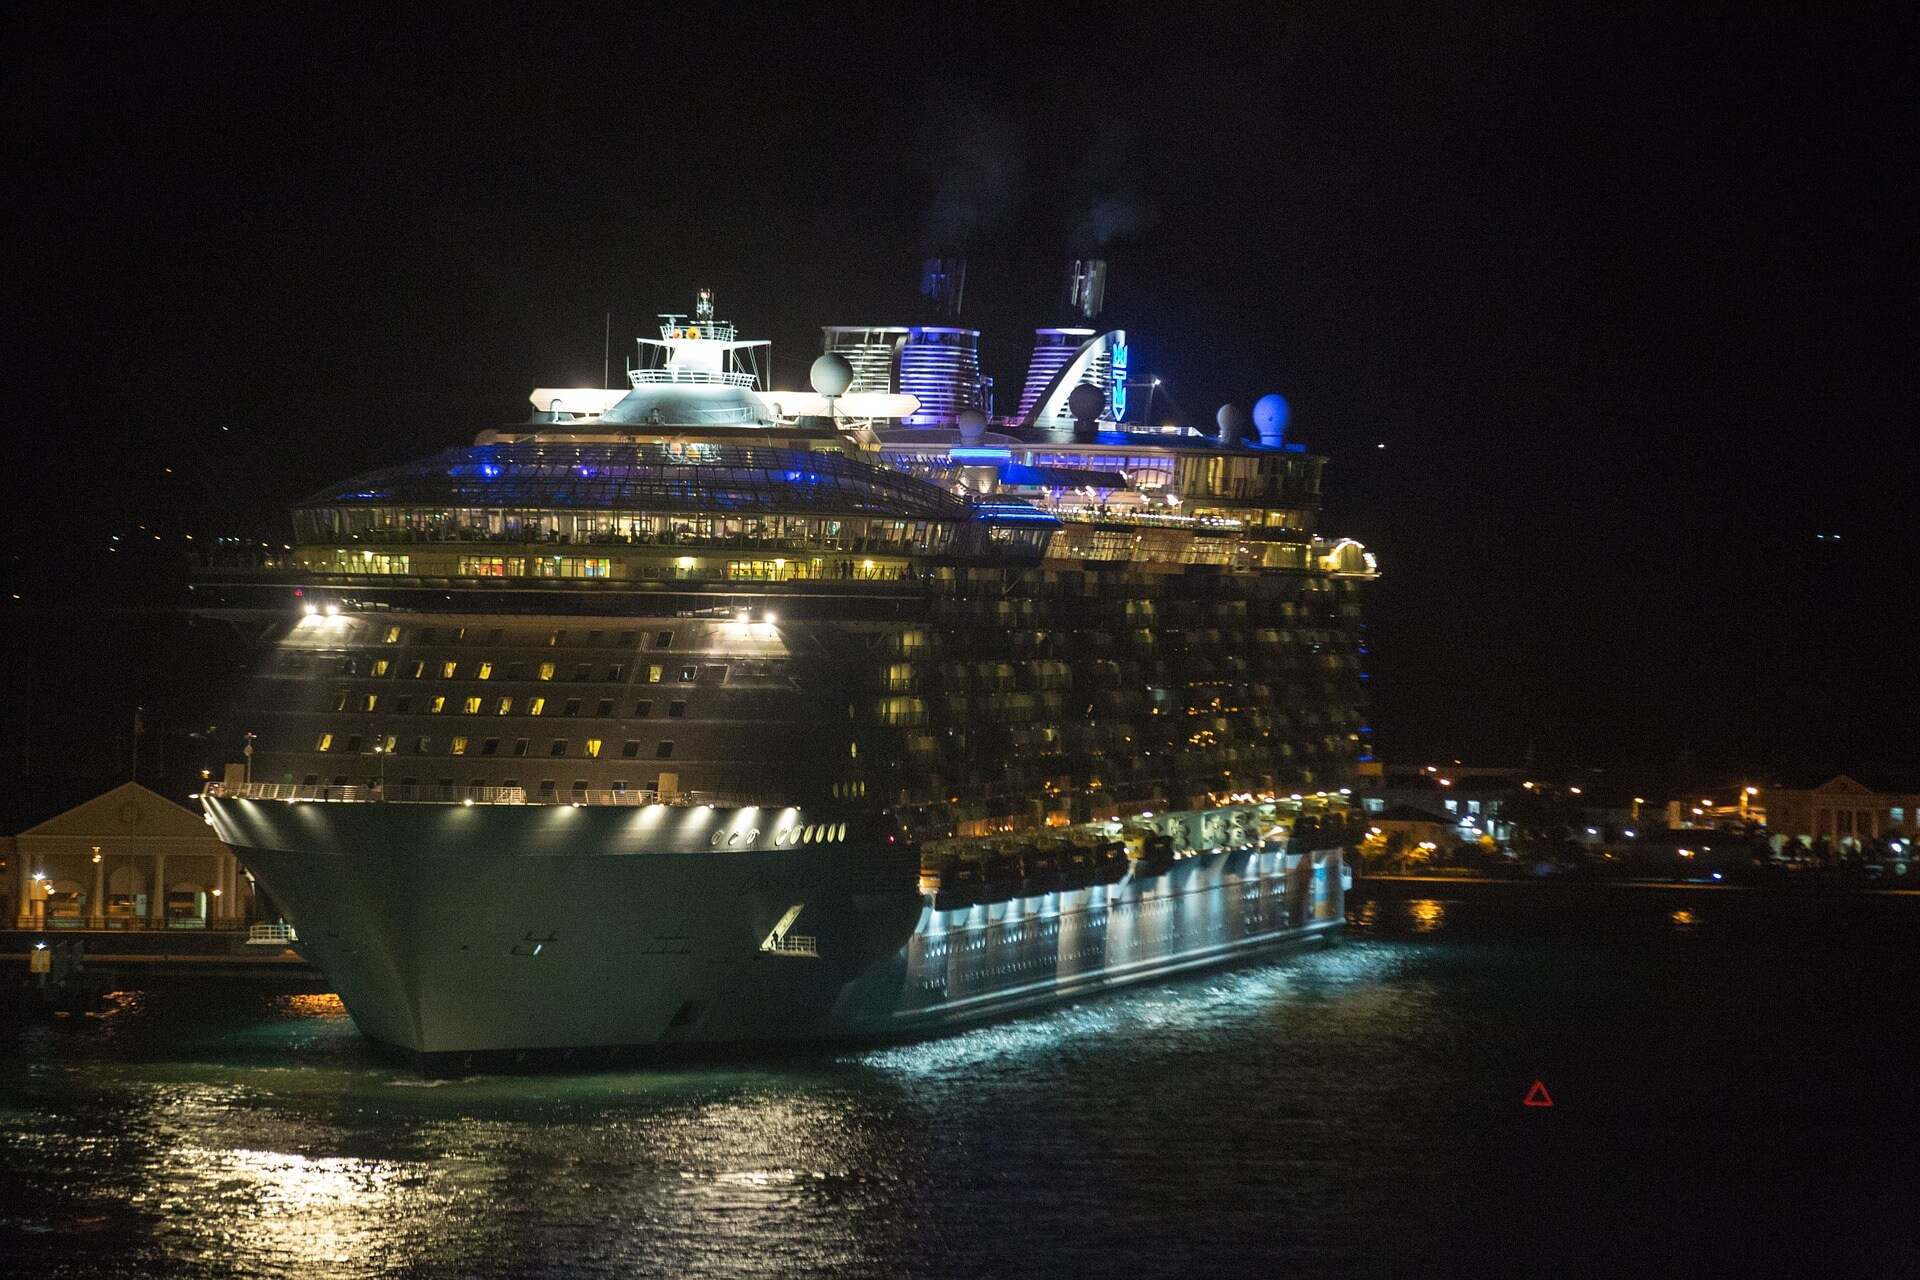 Allure of the Seas